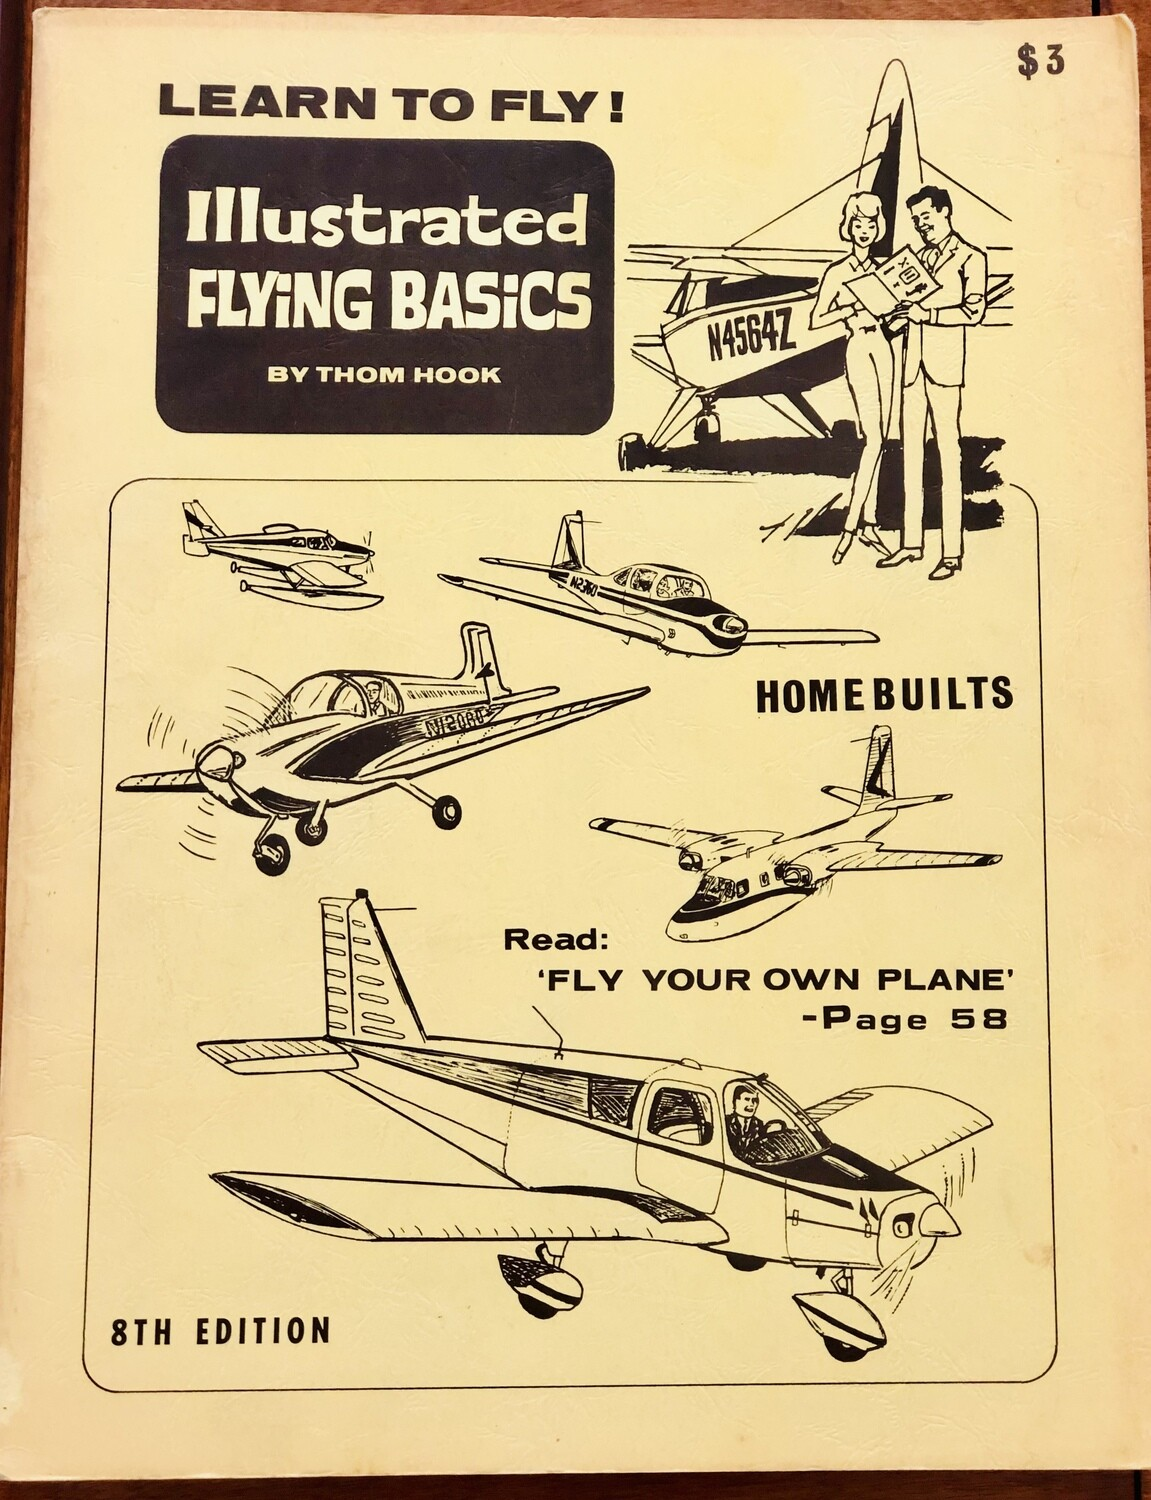 Illustrated Flying Basics by Thom Hook 8th Rivised Edition